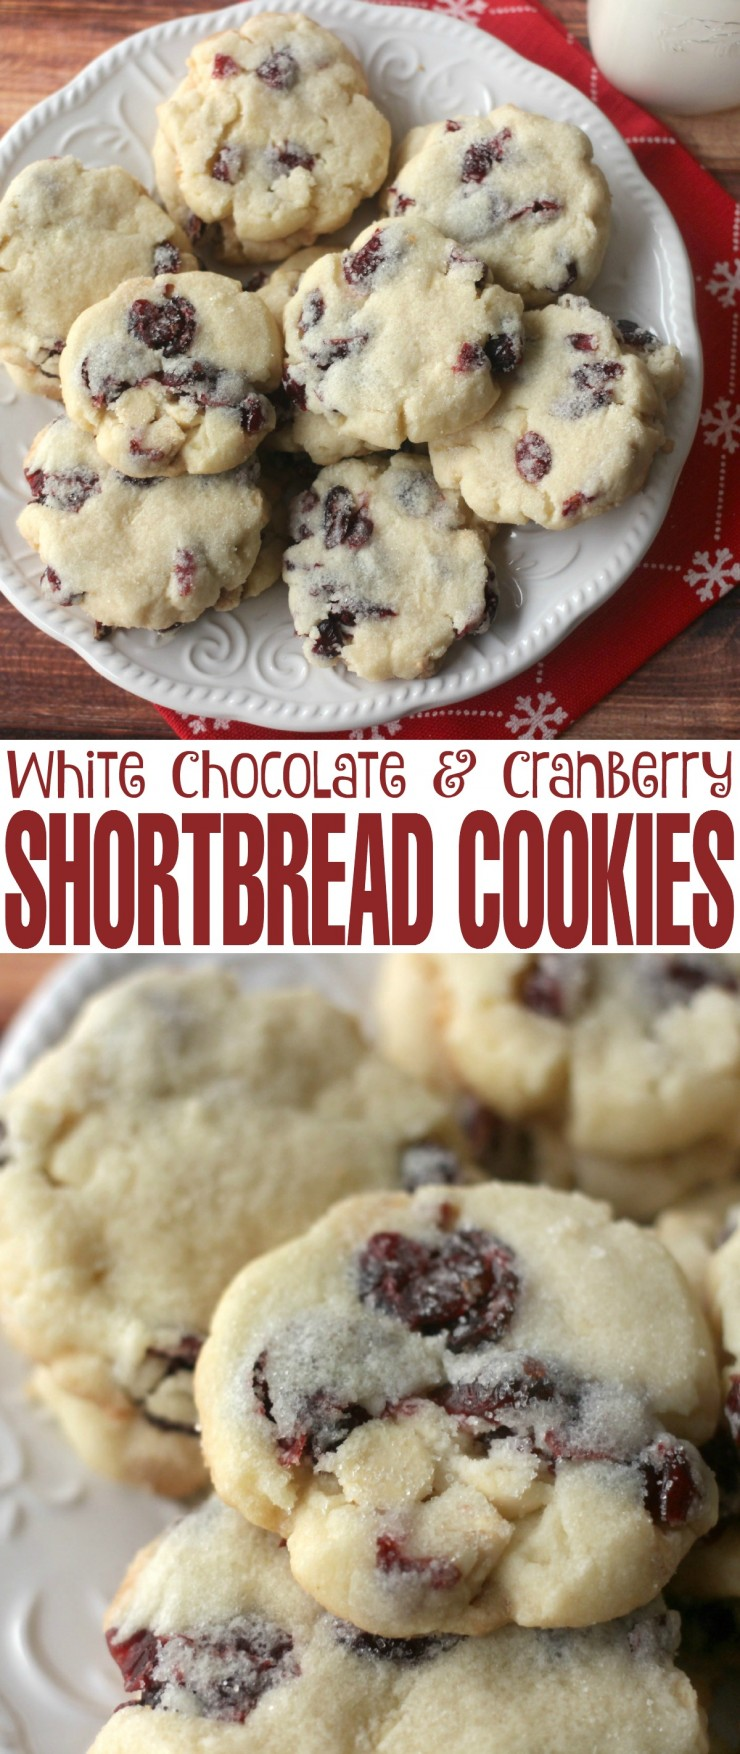 White Chocolate & Cranberry Shortbread Cookies - Frugal Mom Eh!